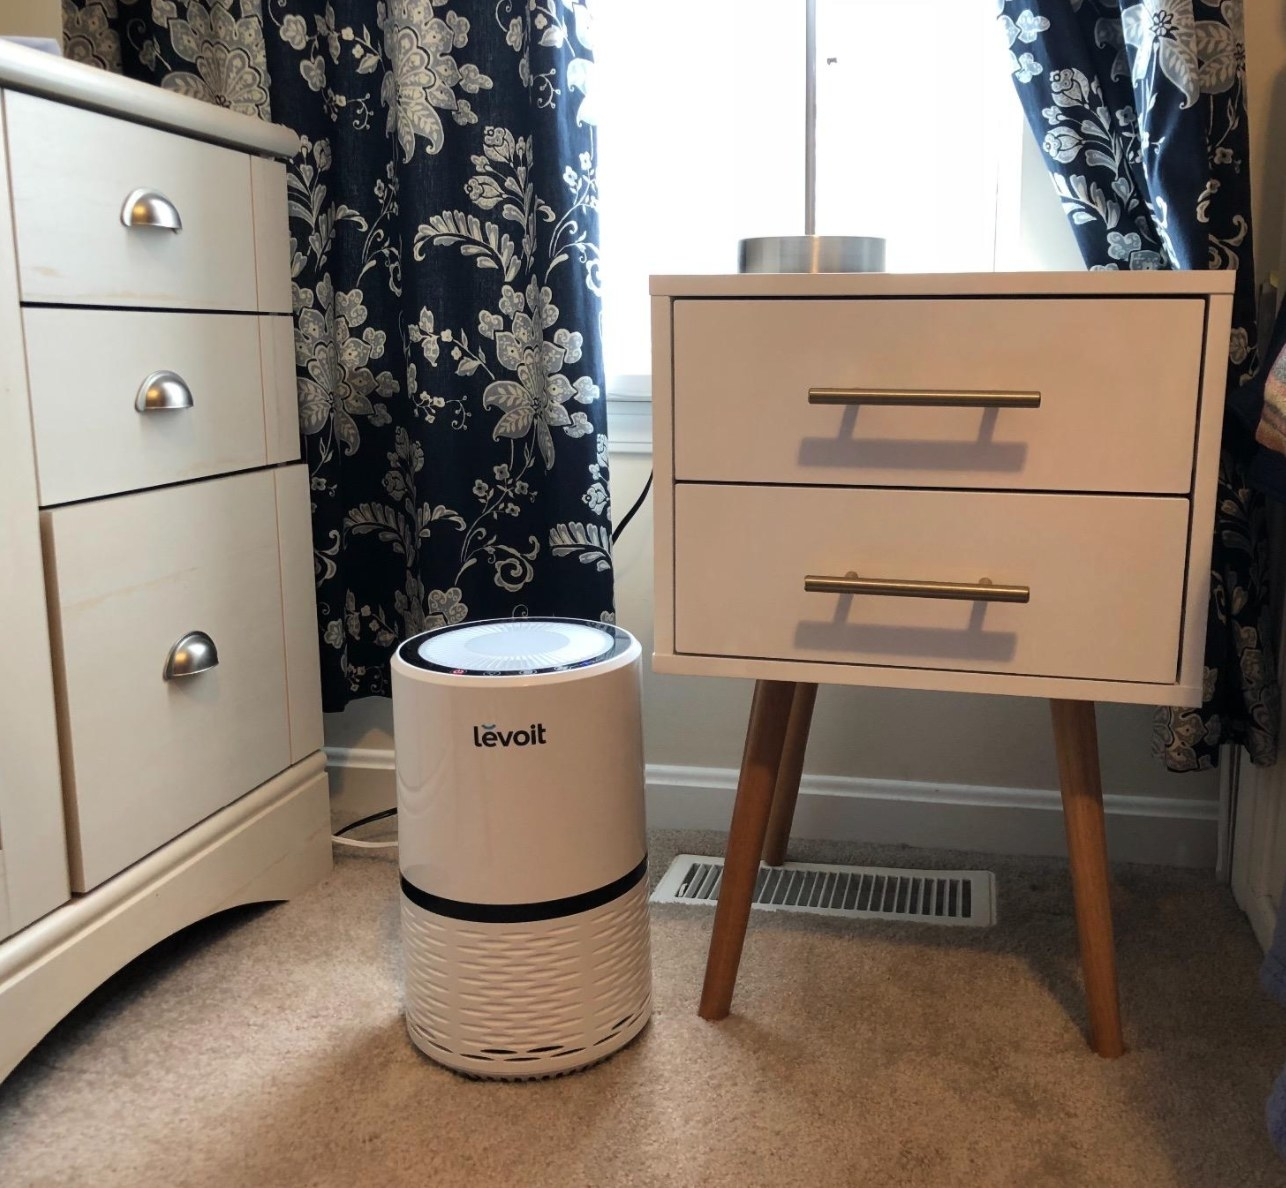 The air purifier in white